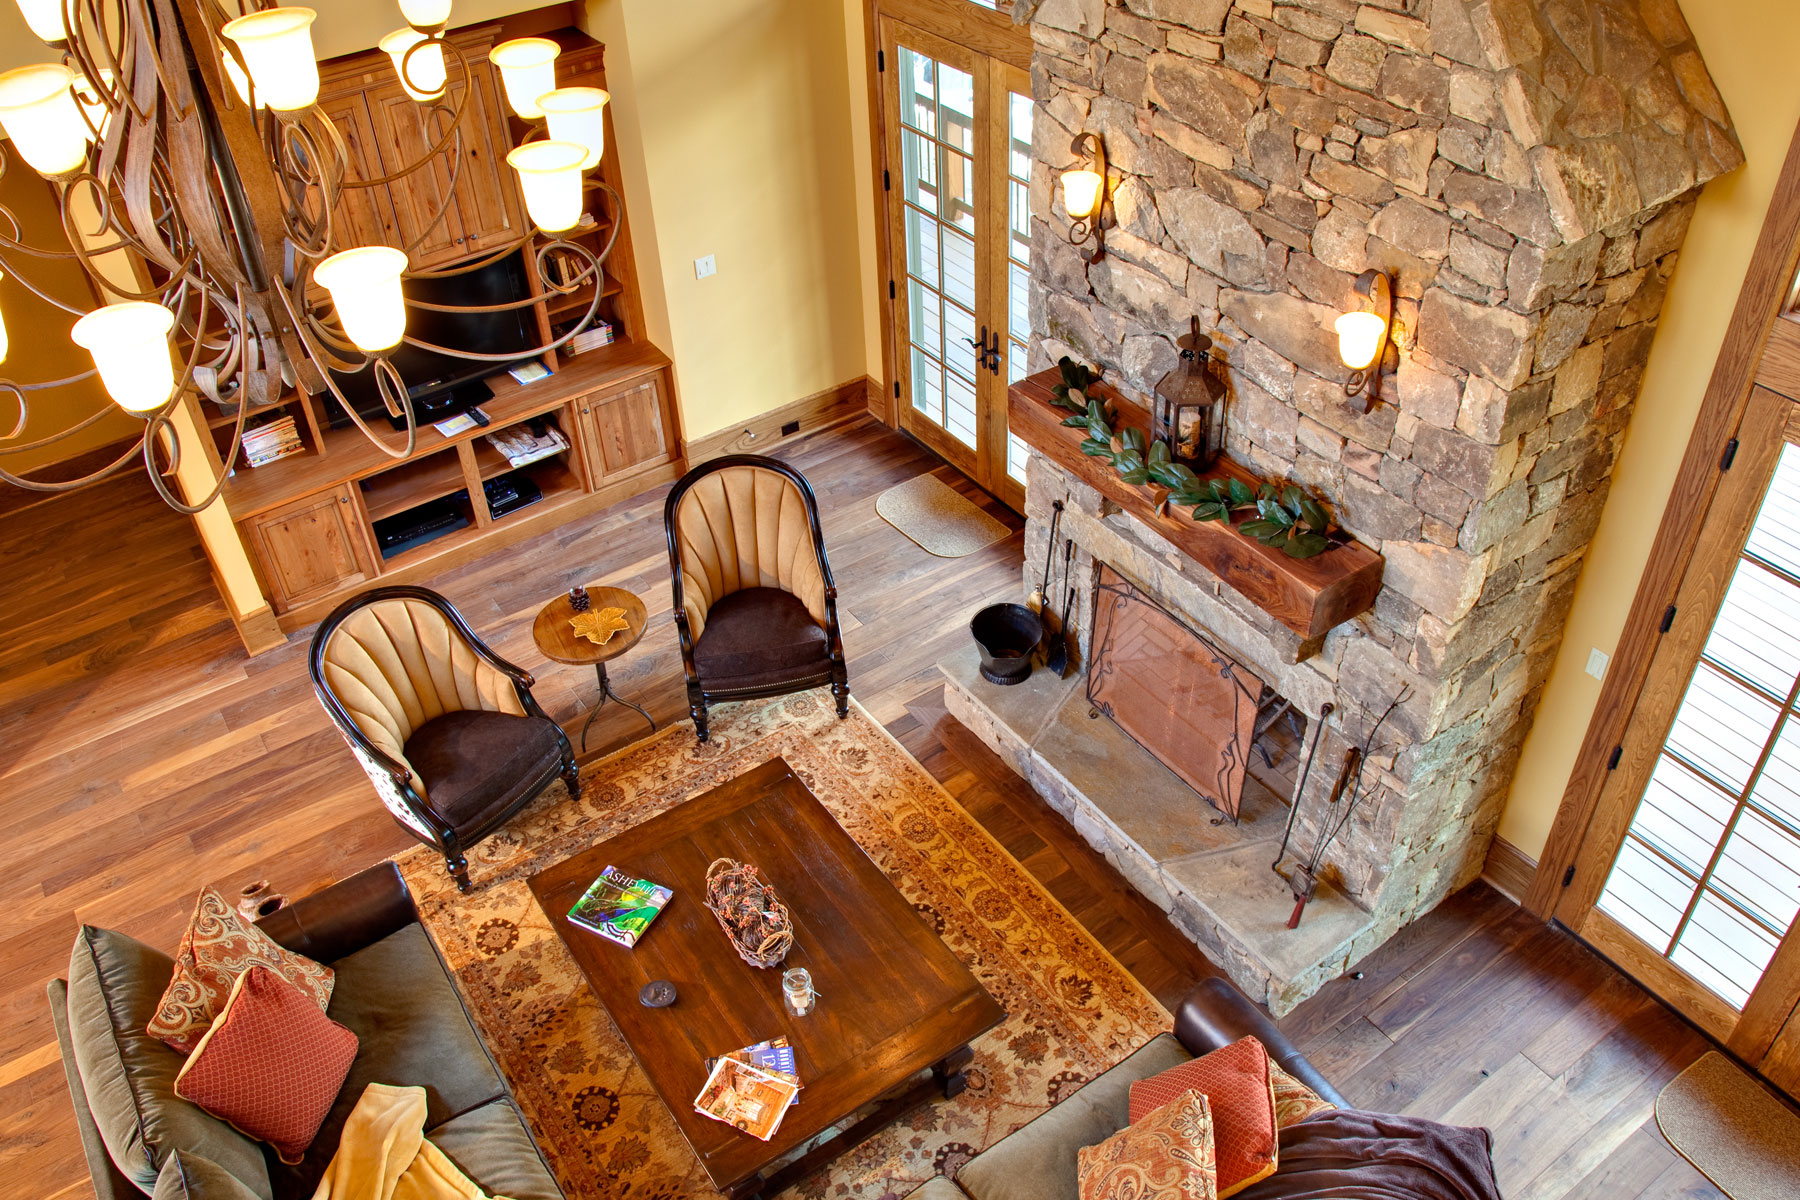 Interior Design and Architecture by ACM Design in Asheville, NC.